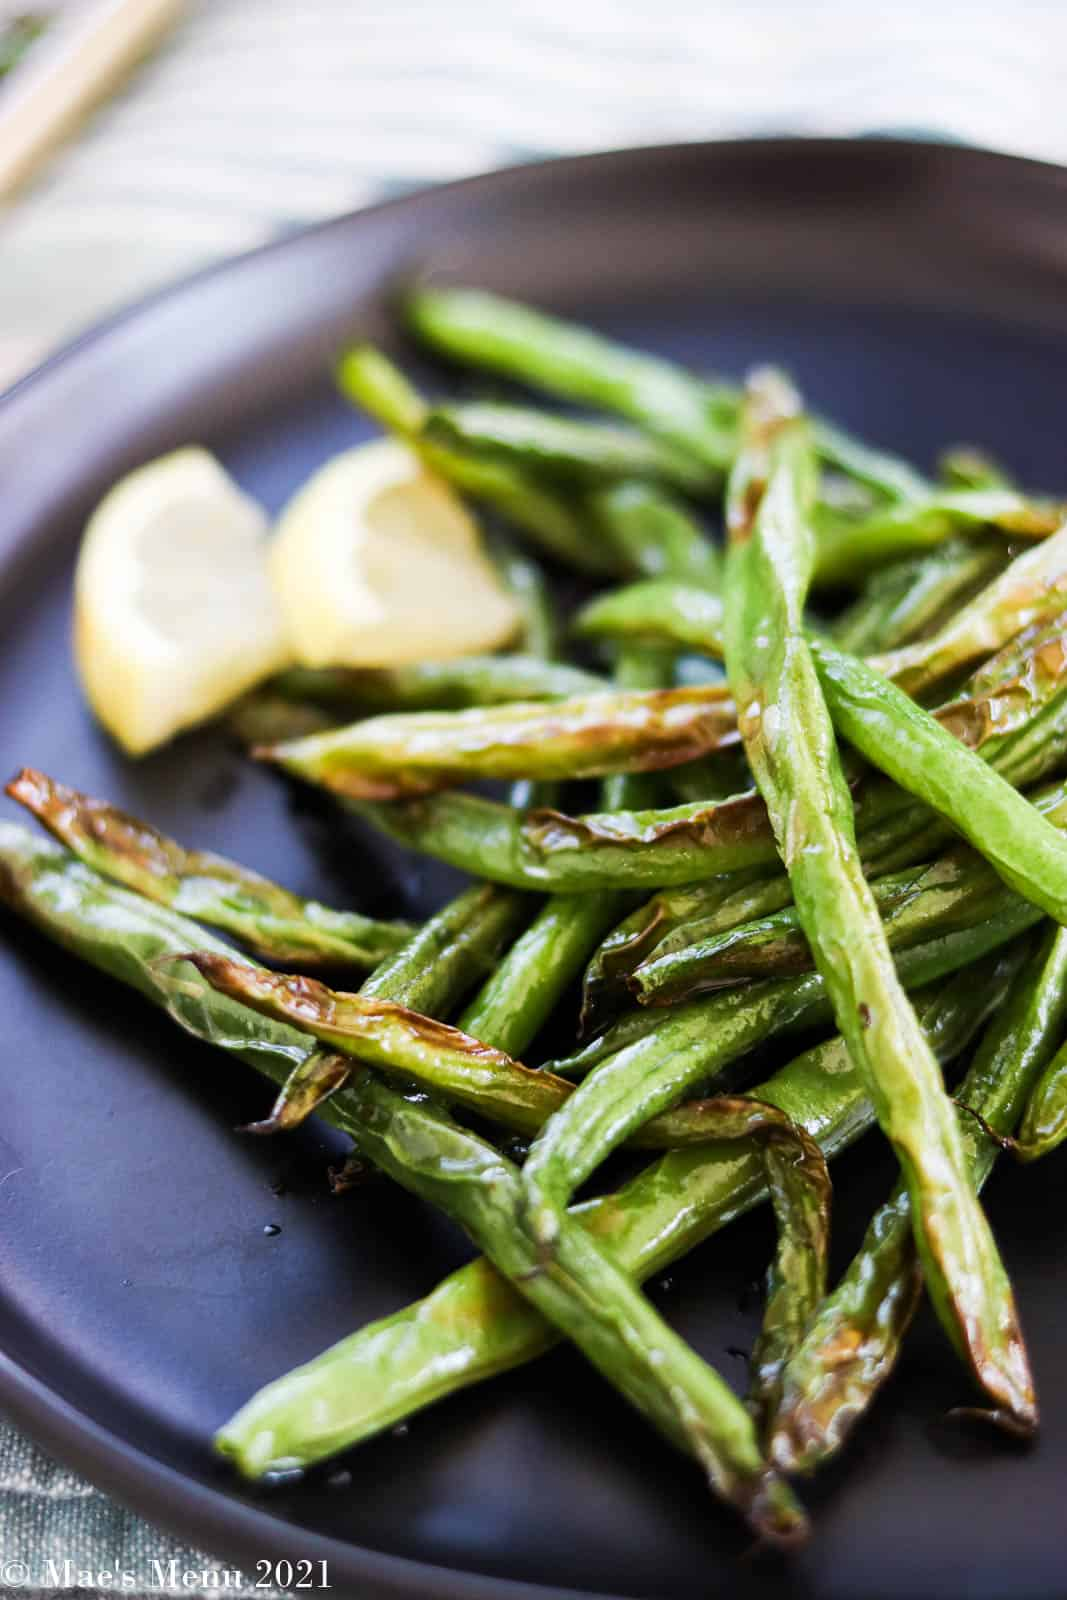 An up-close shot of a black plate of air fryer green beans with lemon